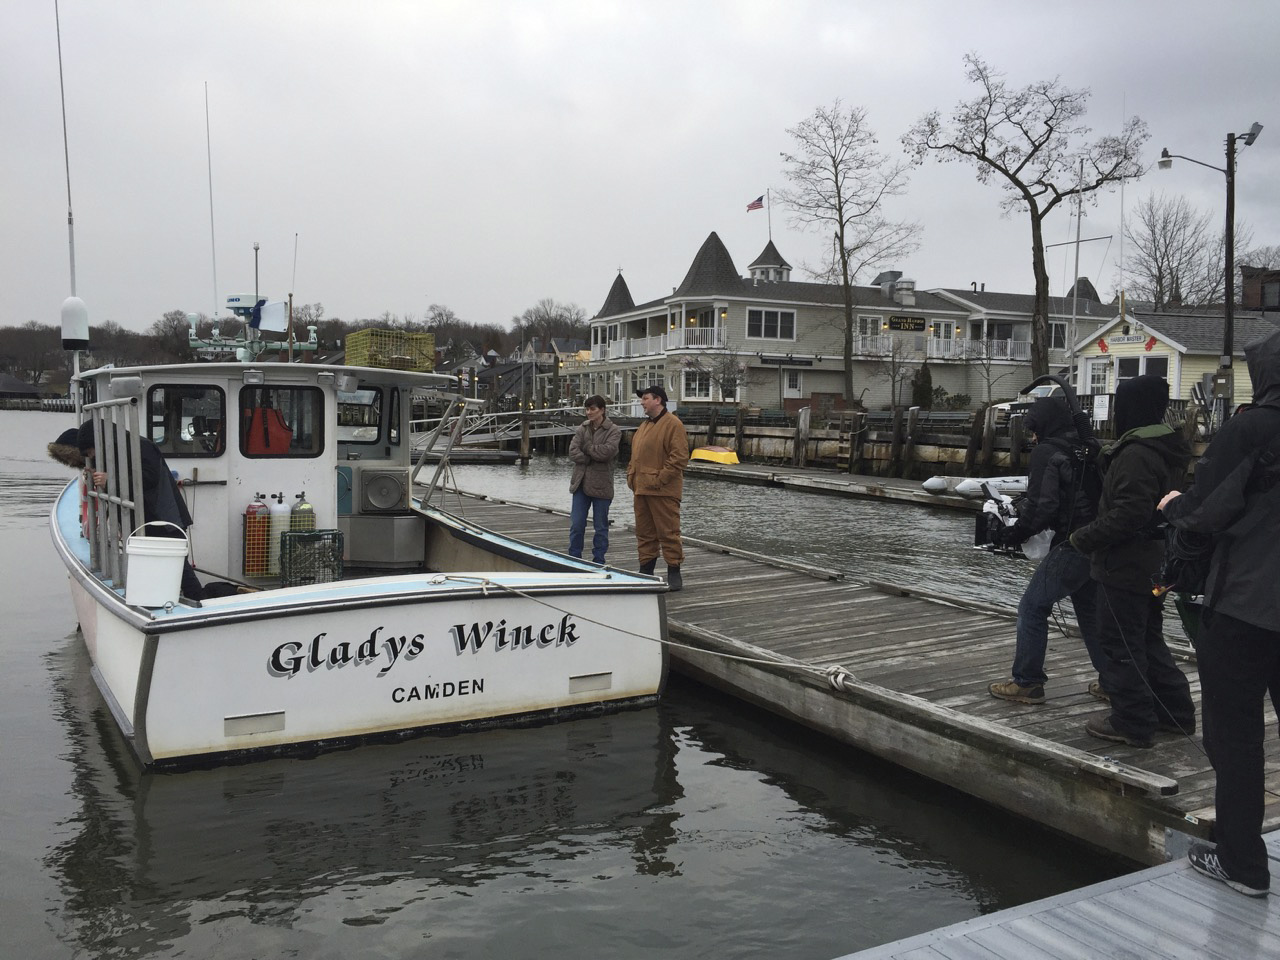 First day of shooting in Camden Harbor